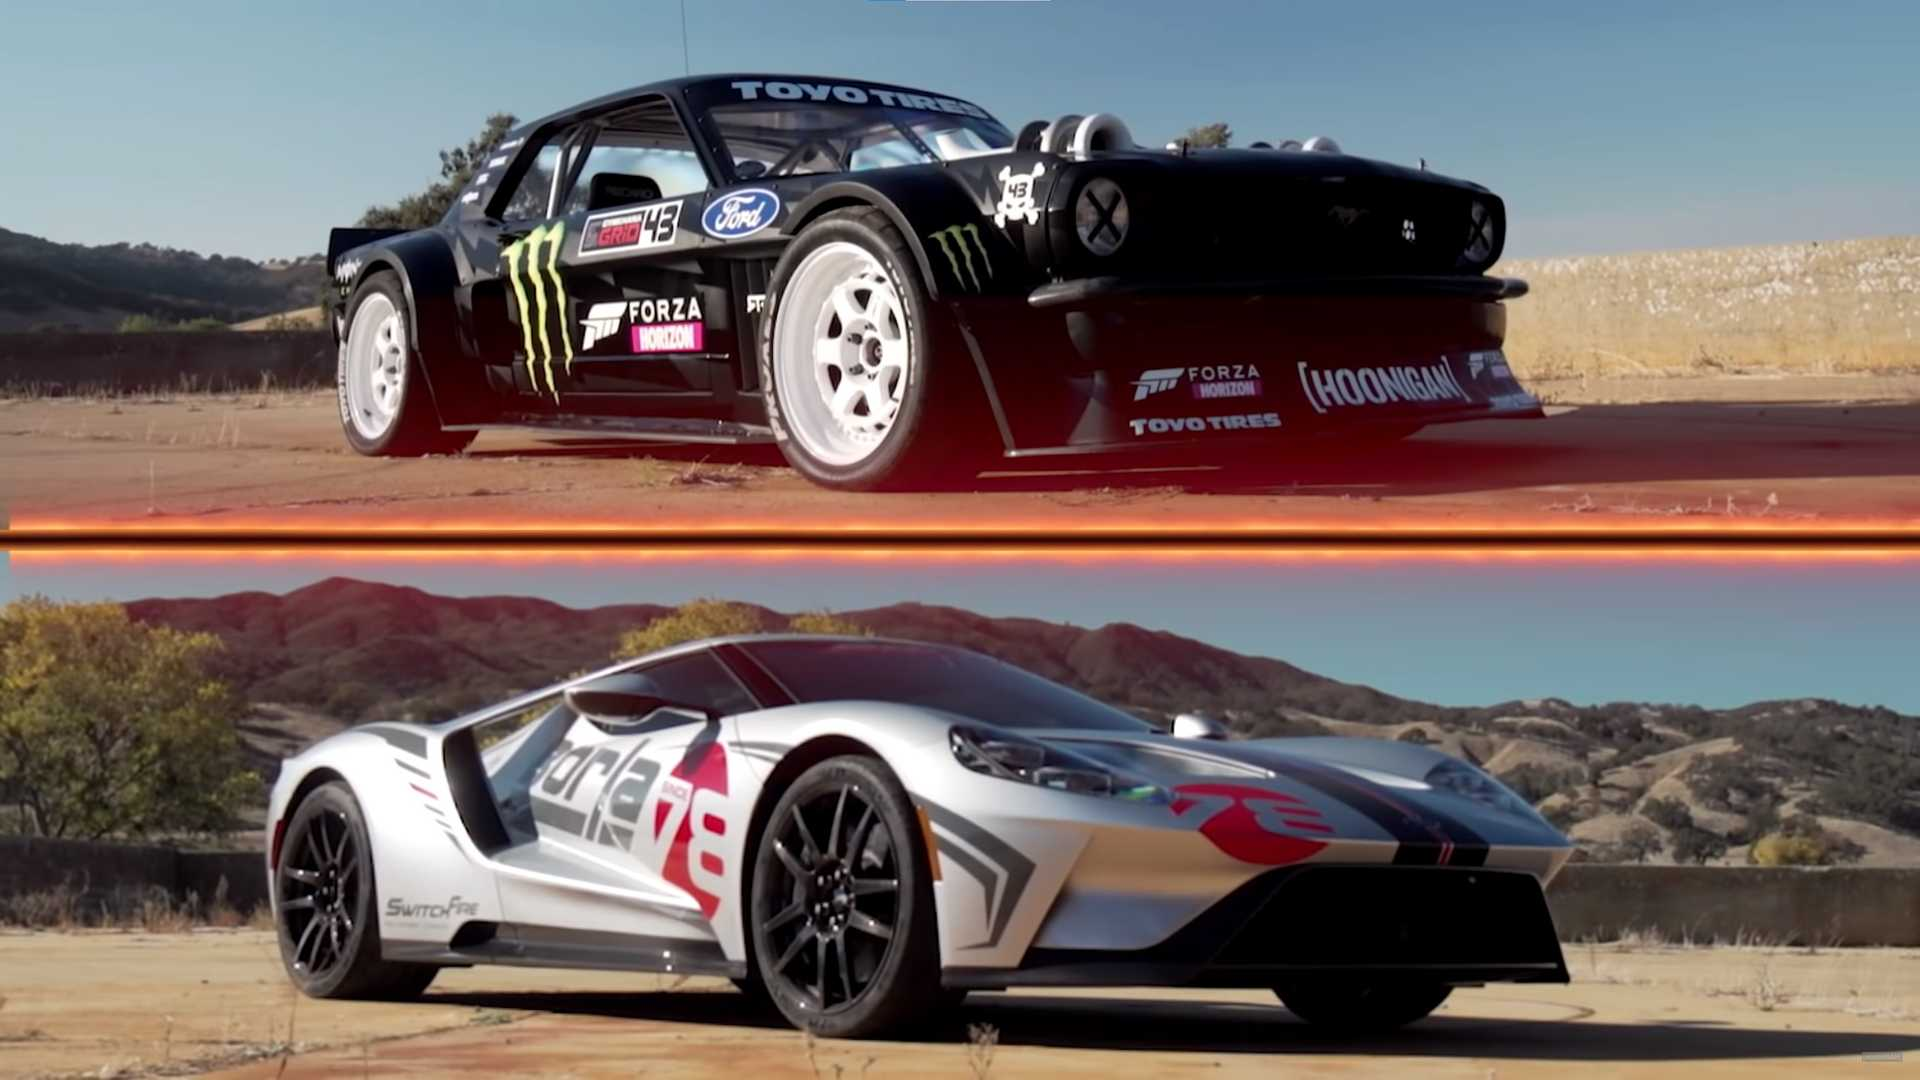 Watch the Hoonicorn Mustang pull the race with the beautiful Ford GT Carbon